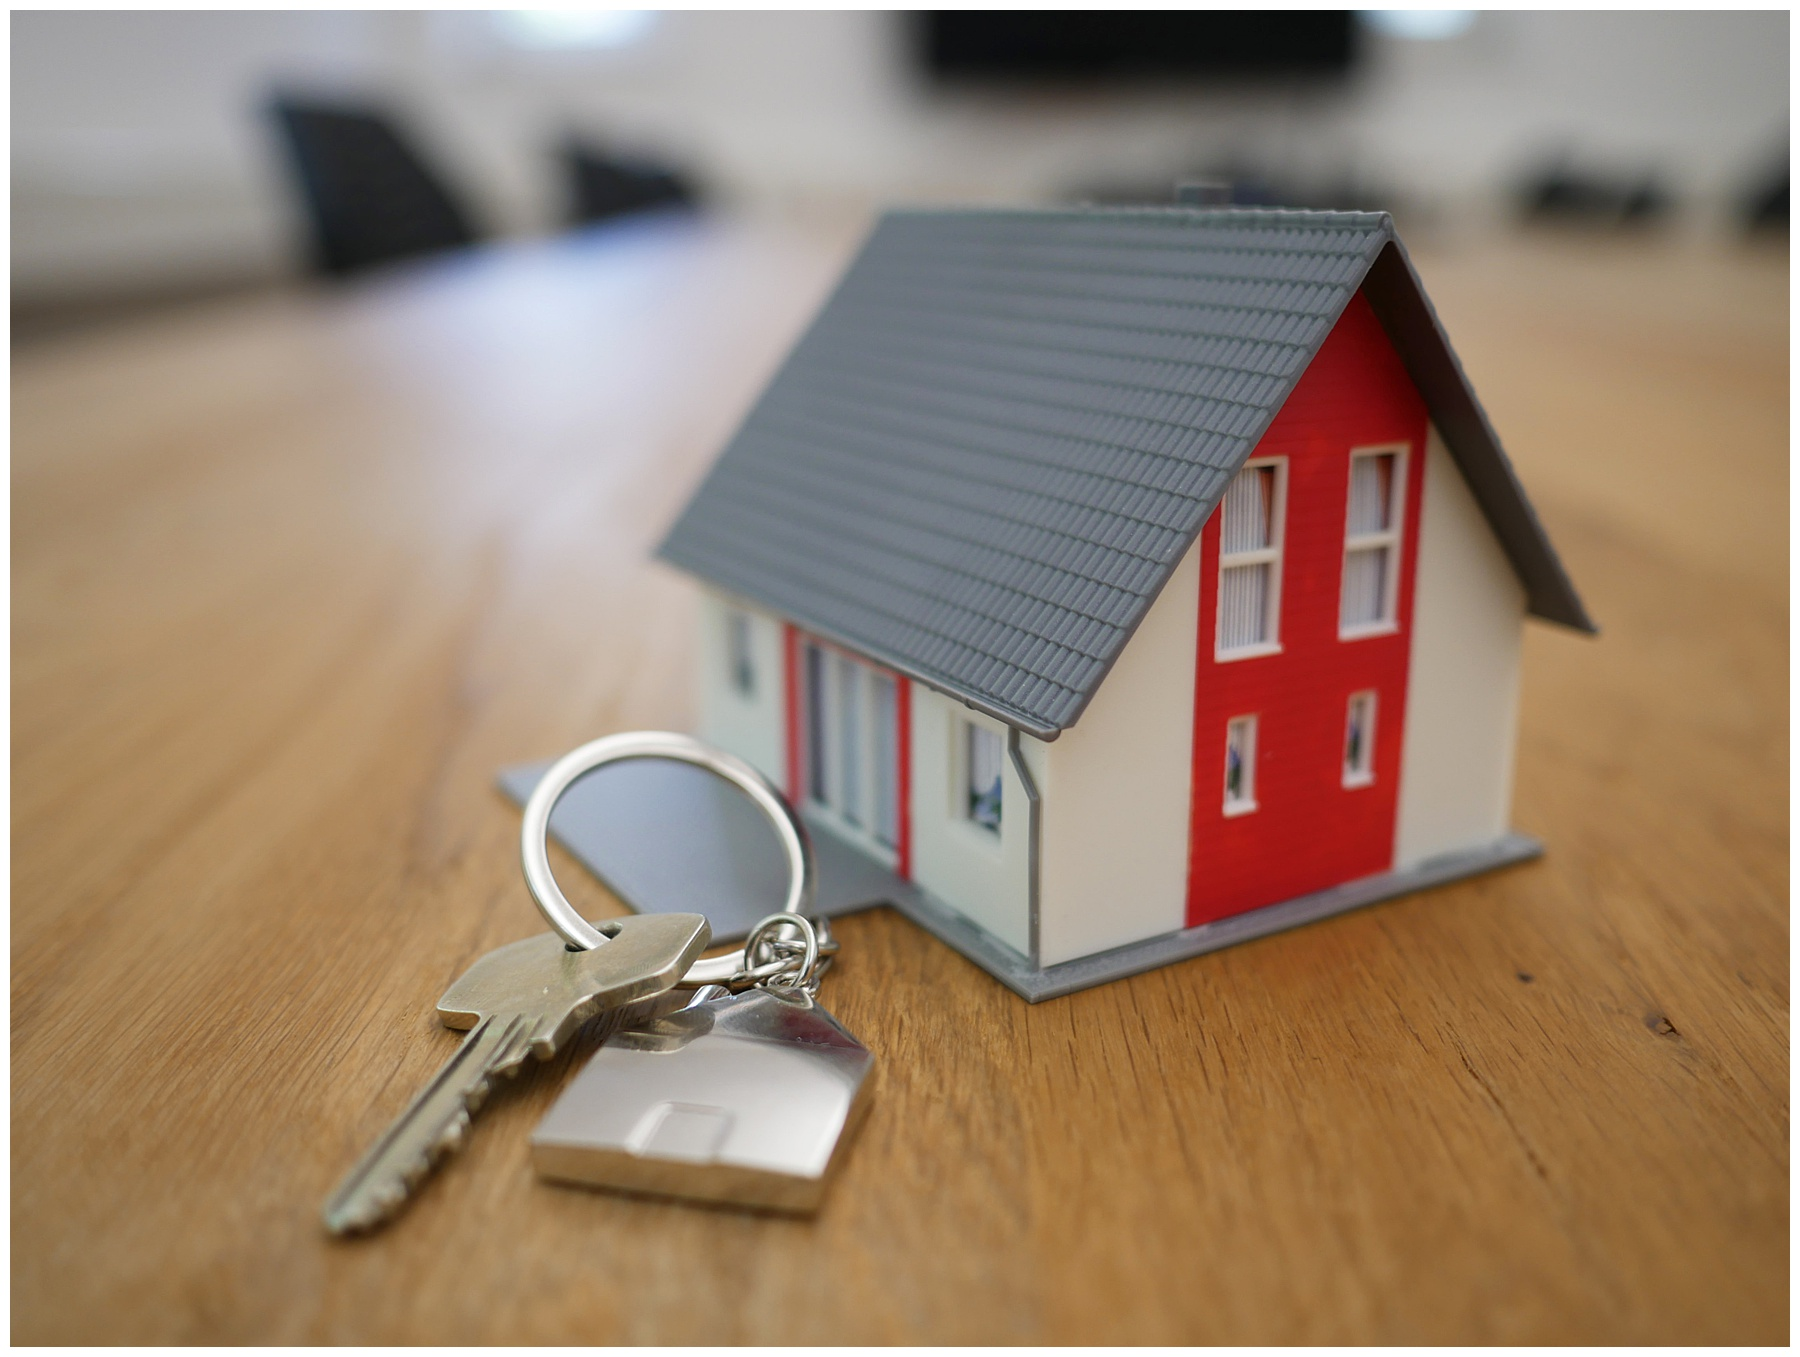 Picture of small house model and a key for a new home to symbolize buying a home in a seller's market